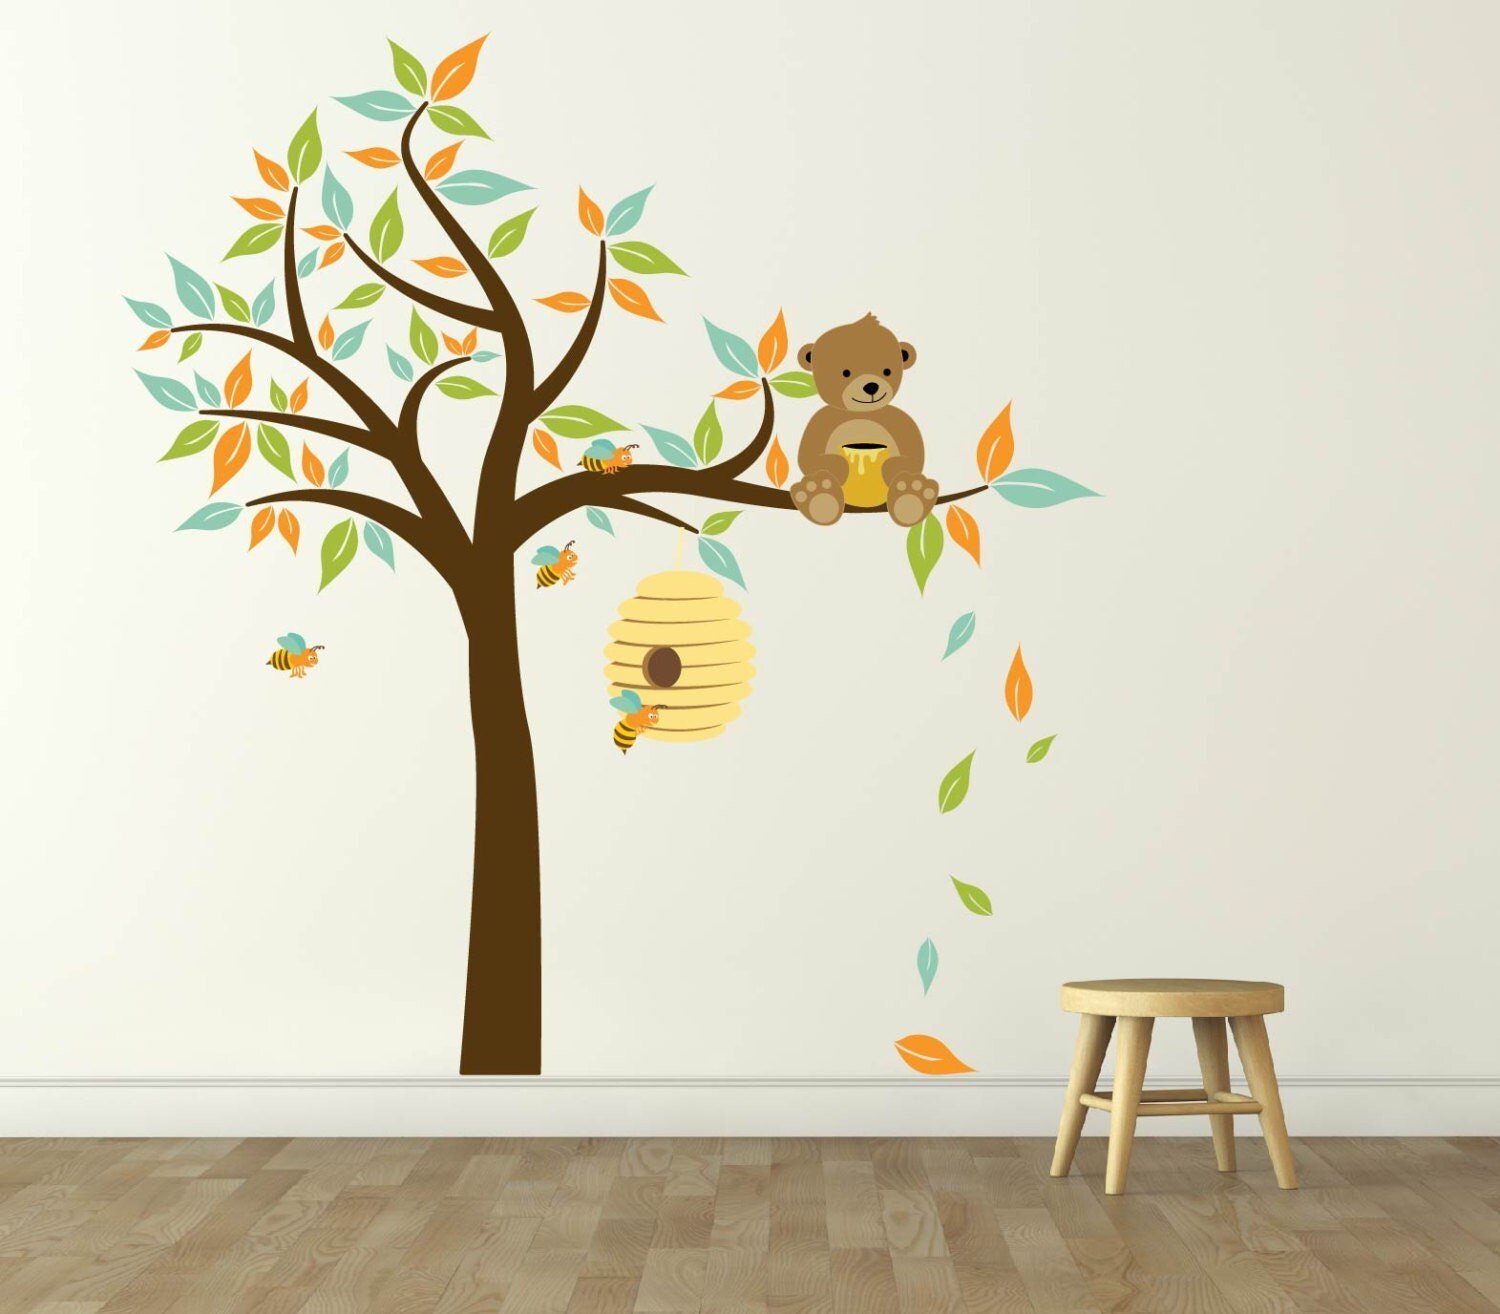 Nursery decals bear decal tree decal bee hive decal for Bee decorations for the home